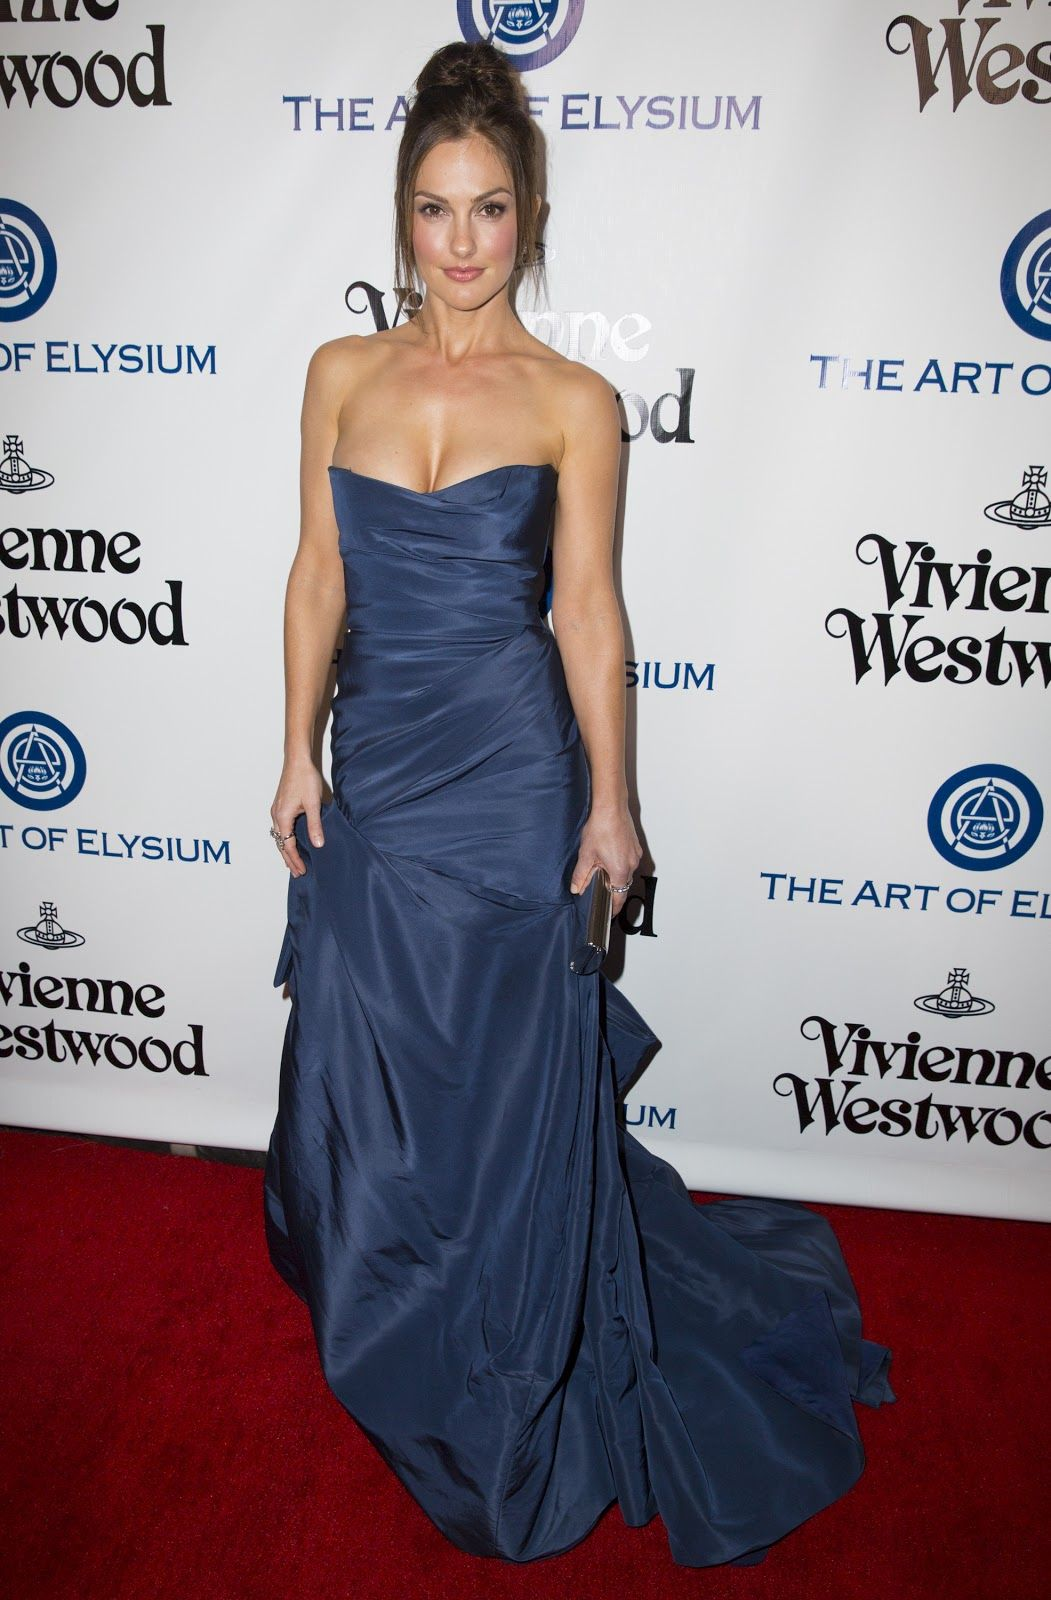 Minka kelly cleavage in a strapless blue dress wear itus at